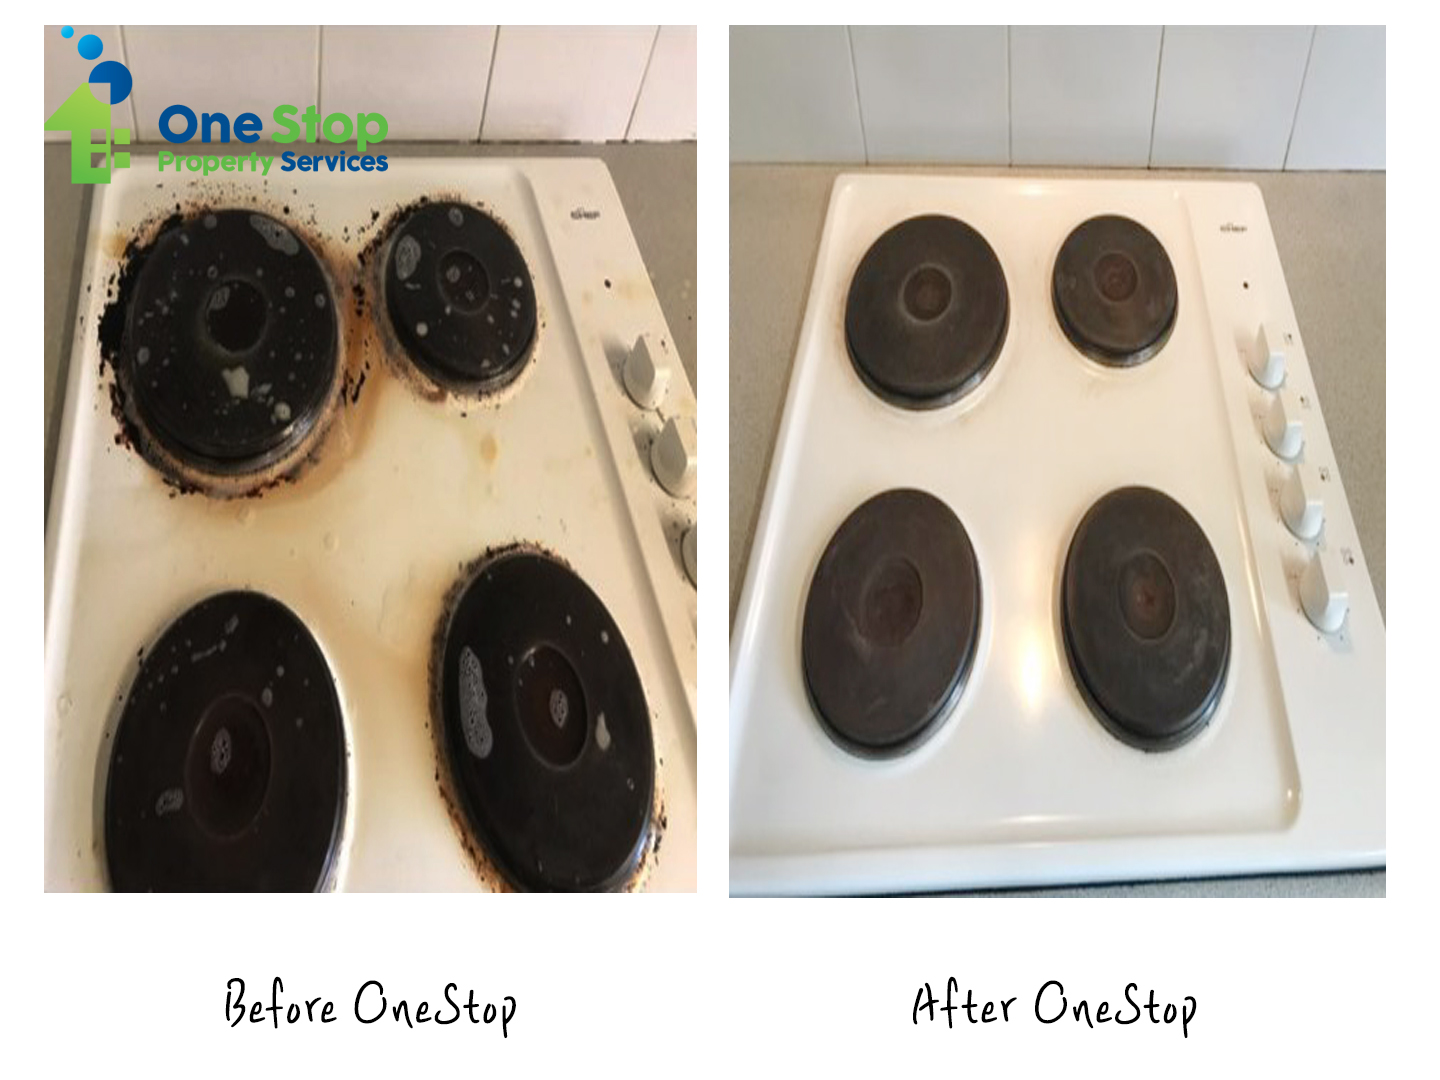 Before and after cleaning the induction at the kitchen